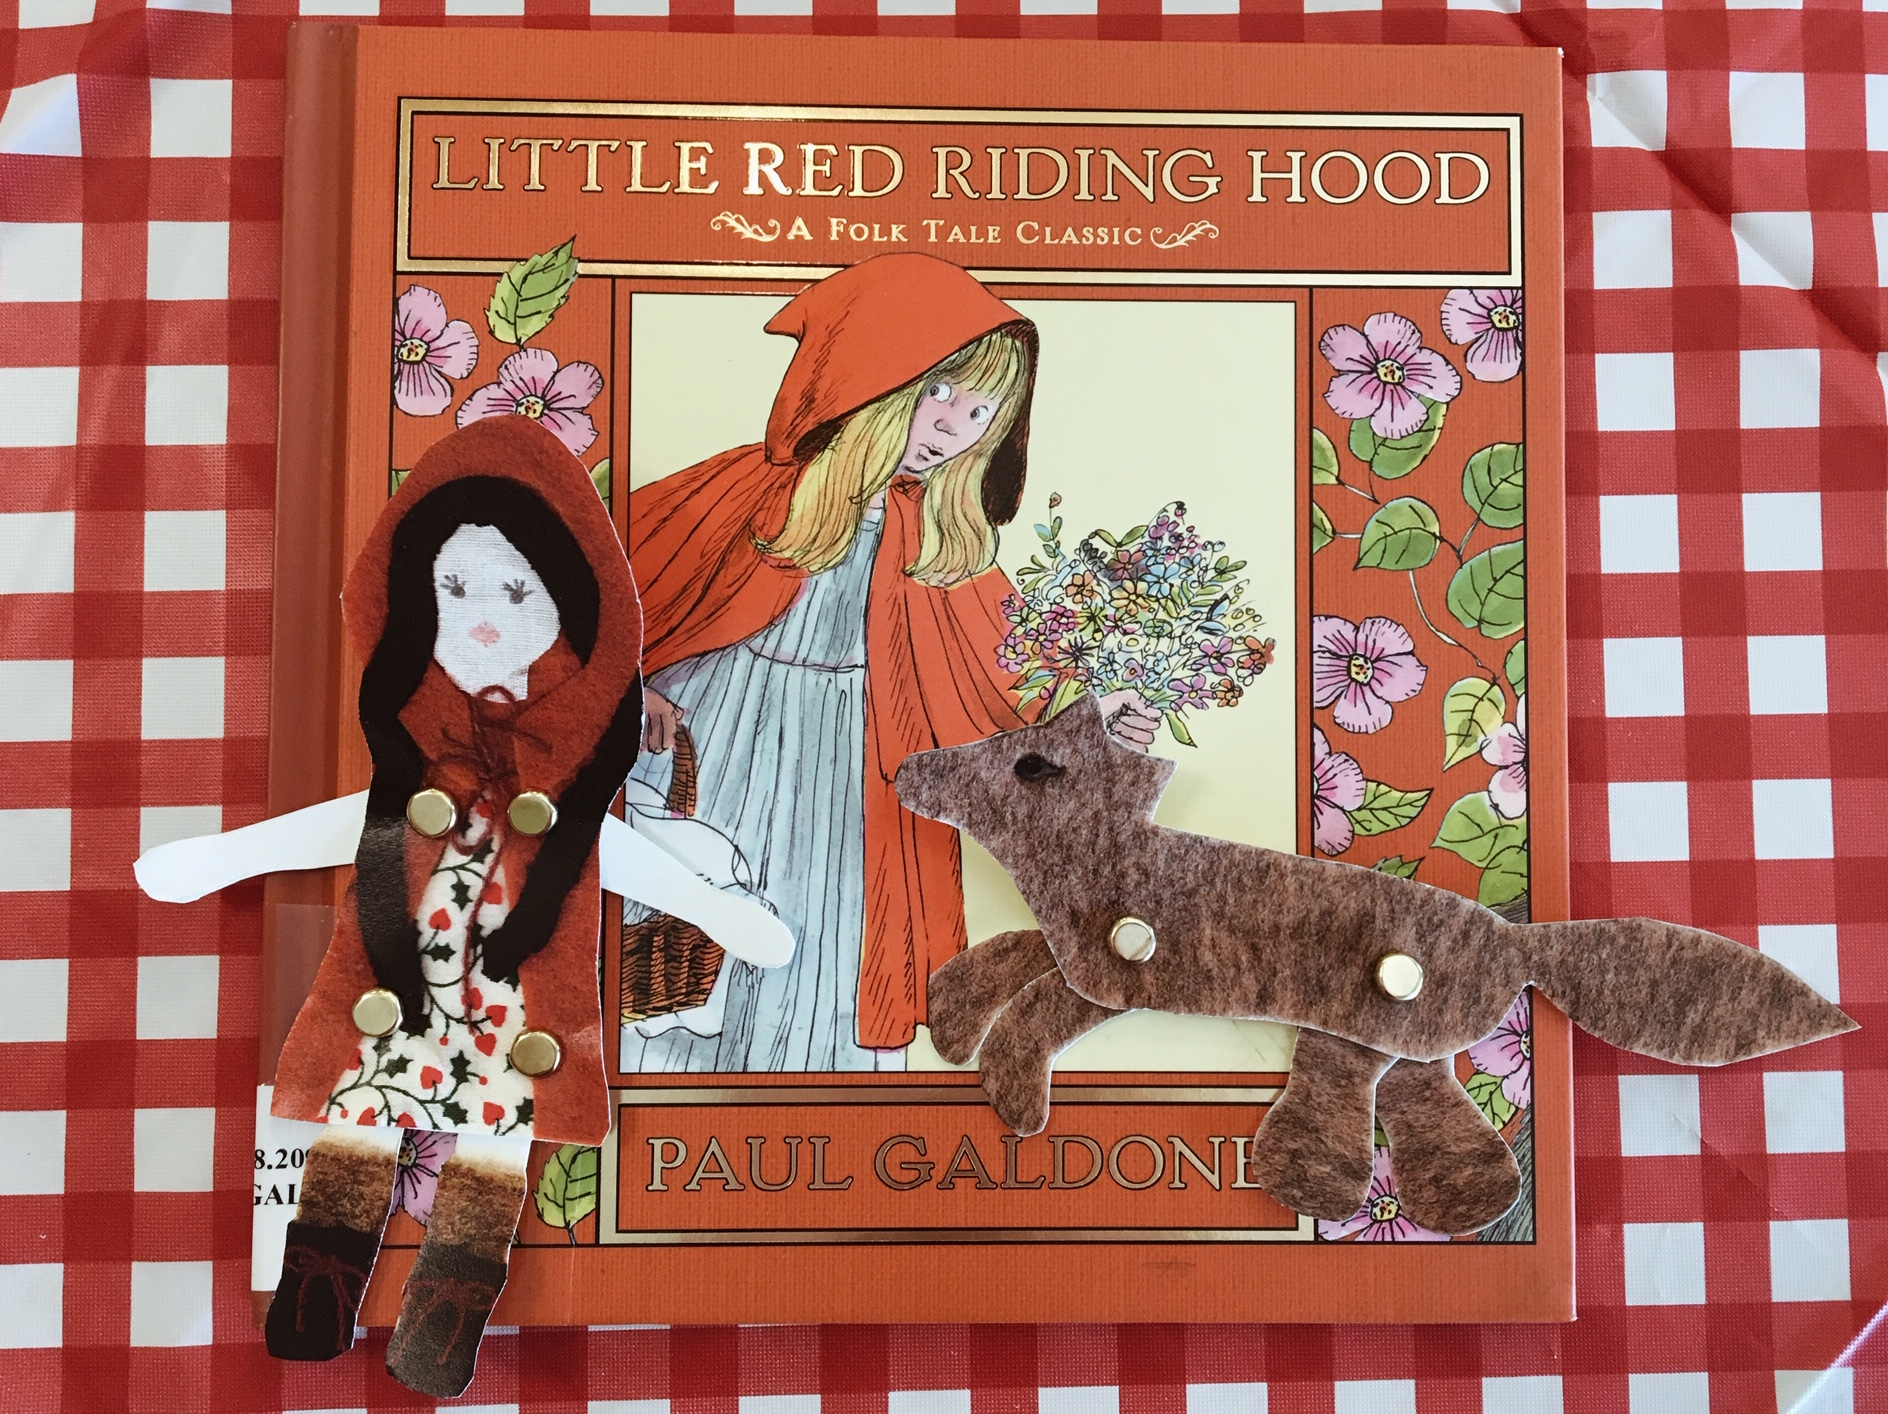 Little Red Riding Hood Story Time #littleredridinghood #storytime #fairytale #kidsparty #kidscraft #library #childrenslibrary